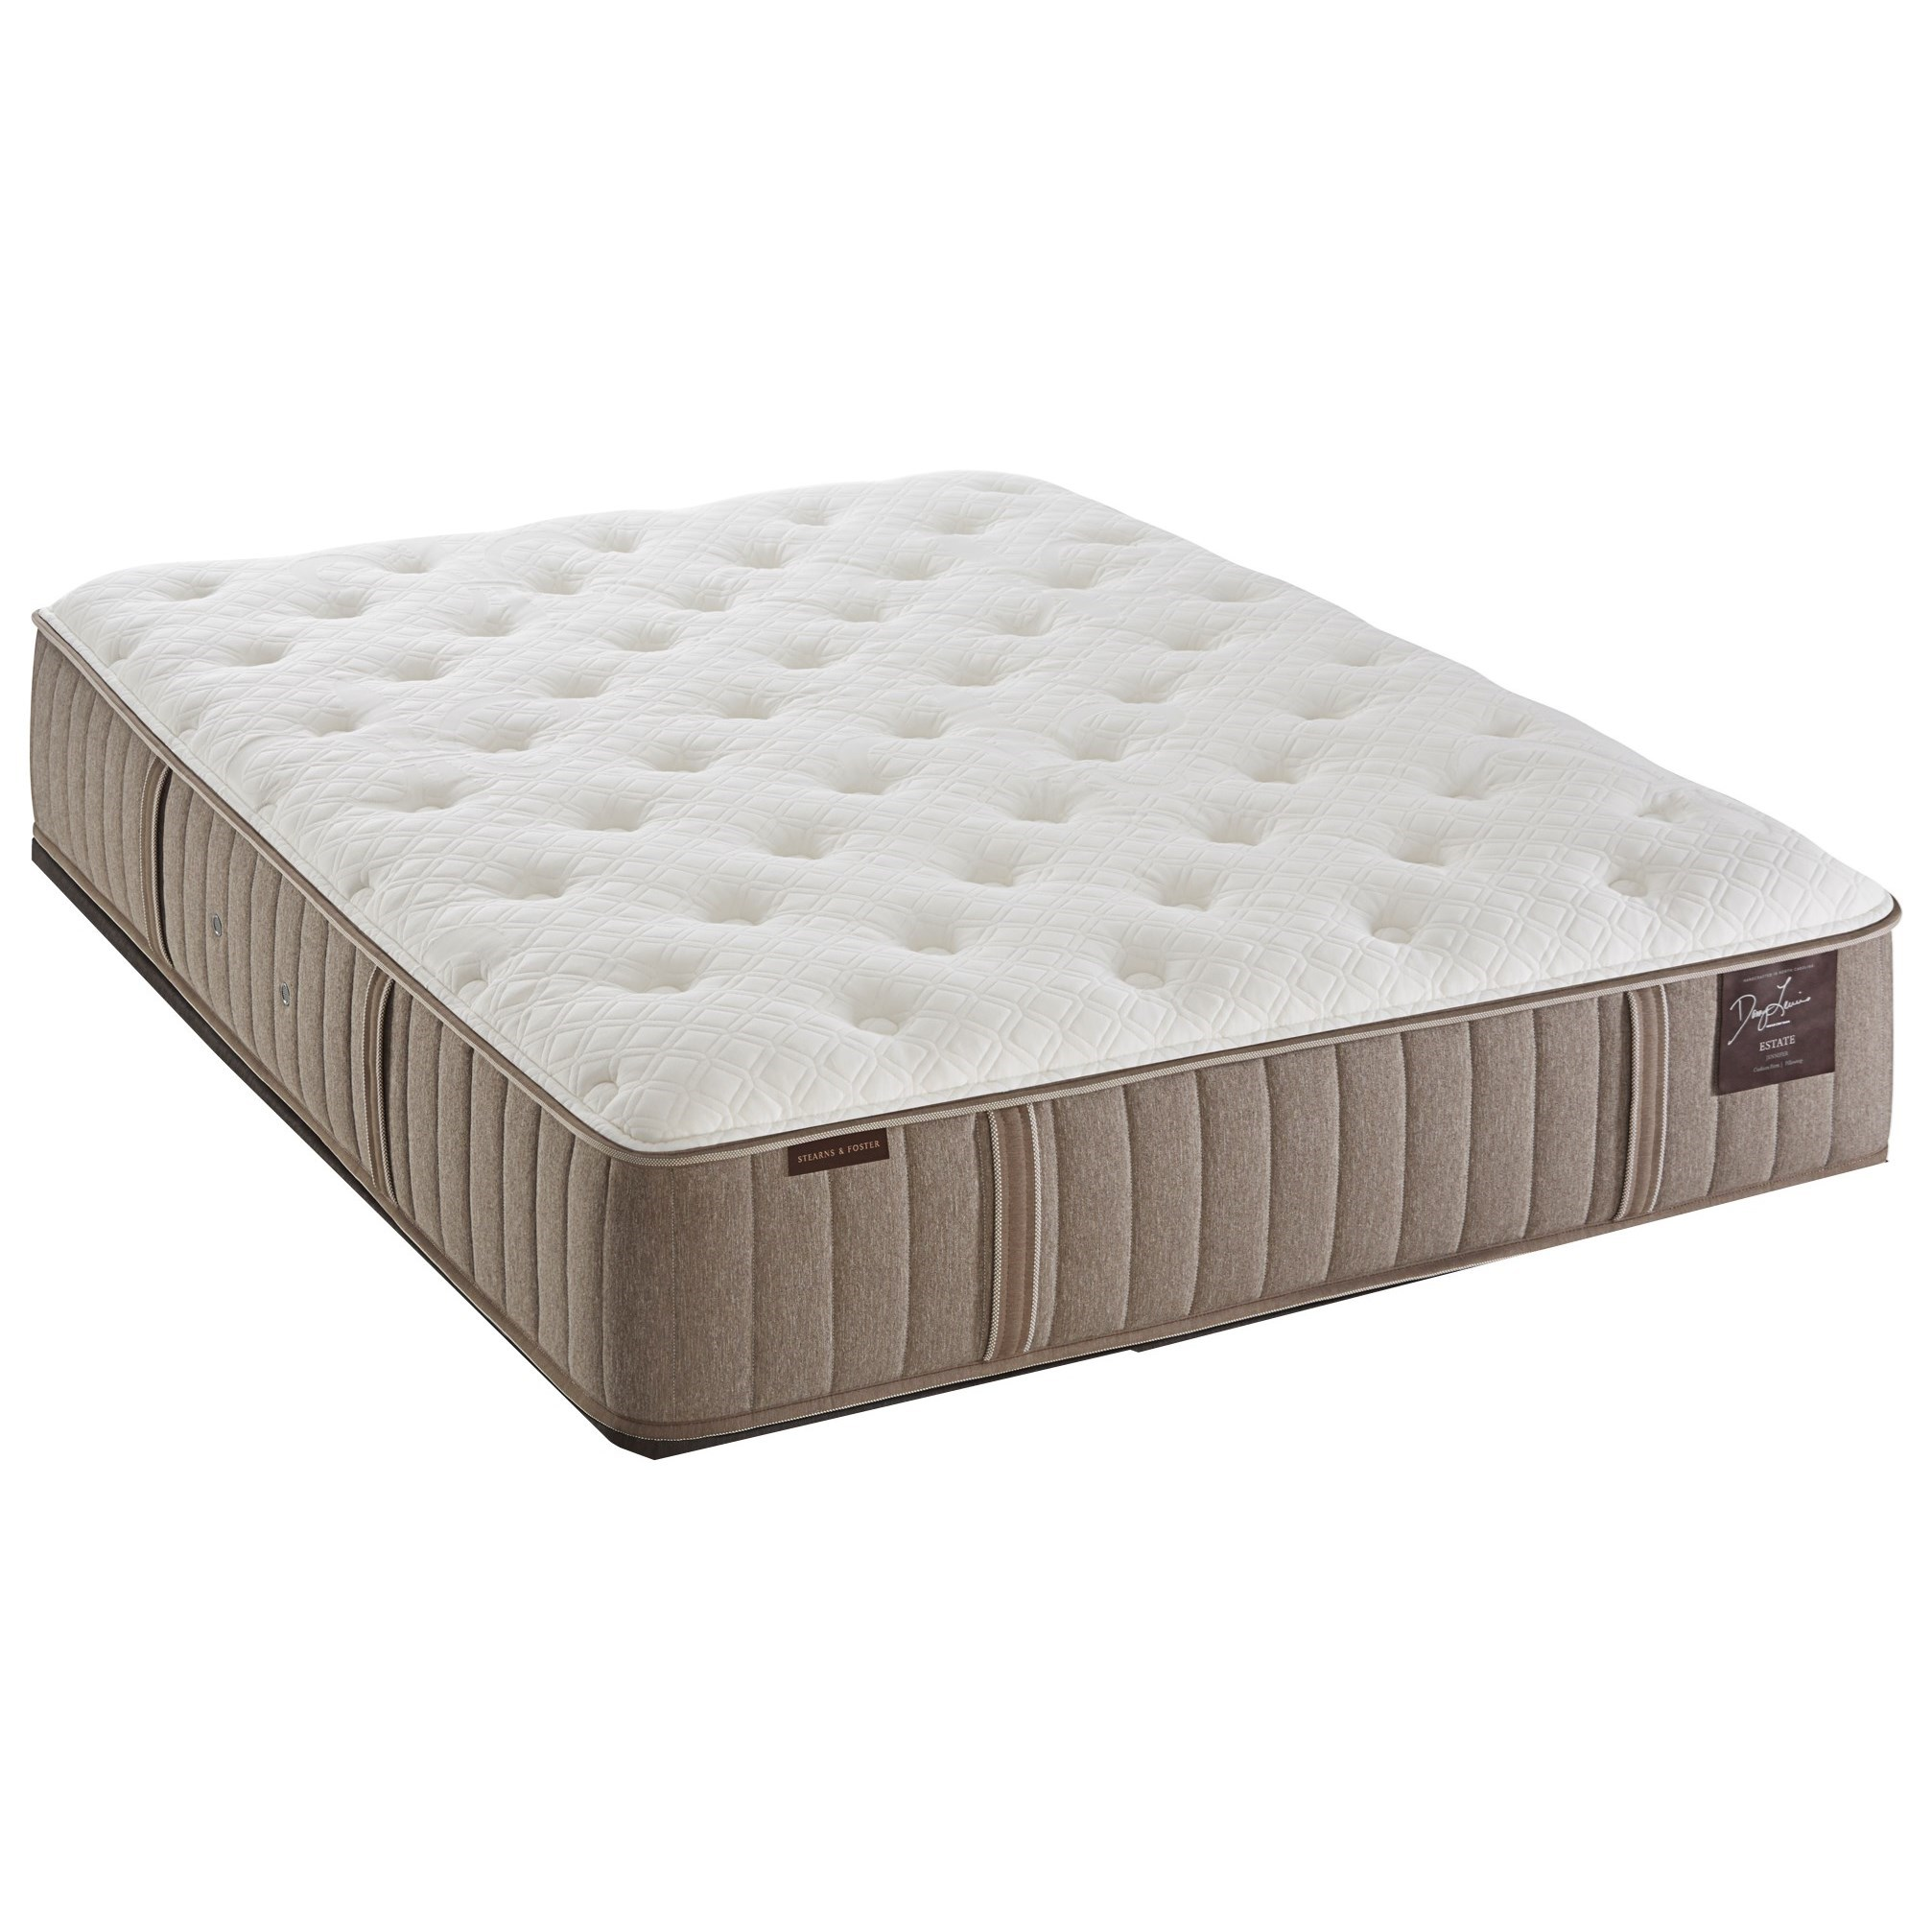 Stearns & Foster Scarborough Cal King Plush Tight Top Mattress - Item Number: Plush-CK